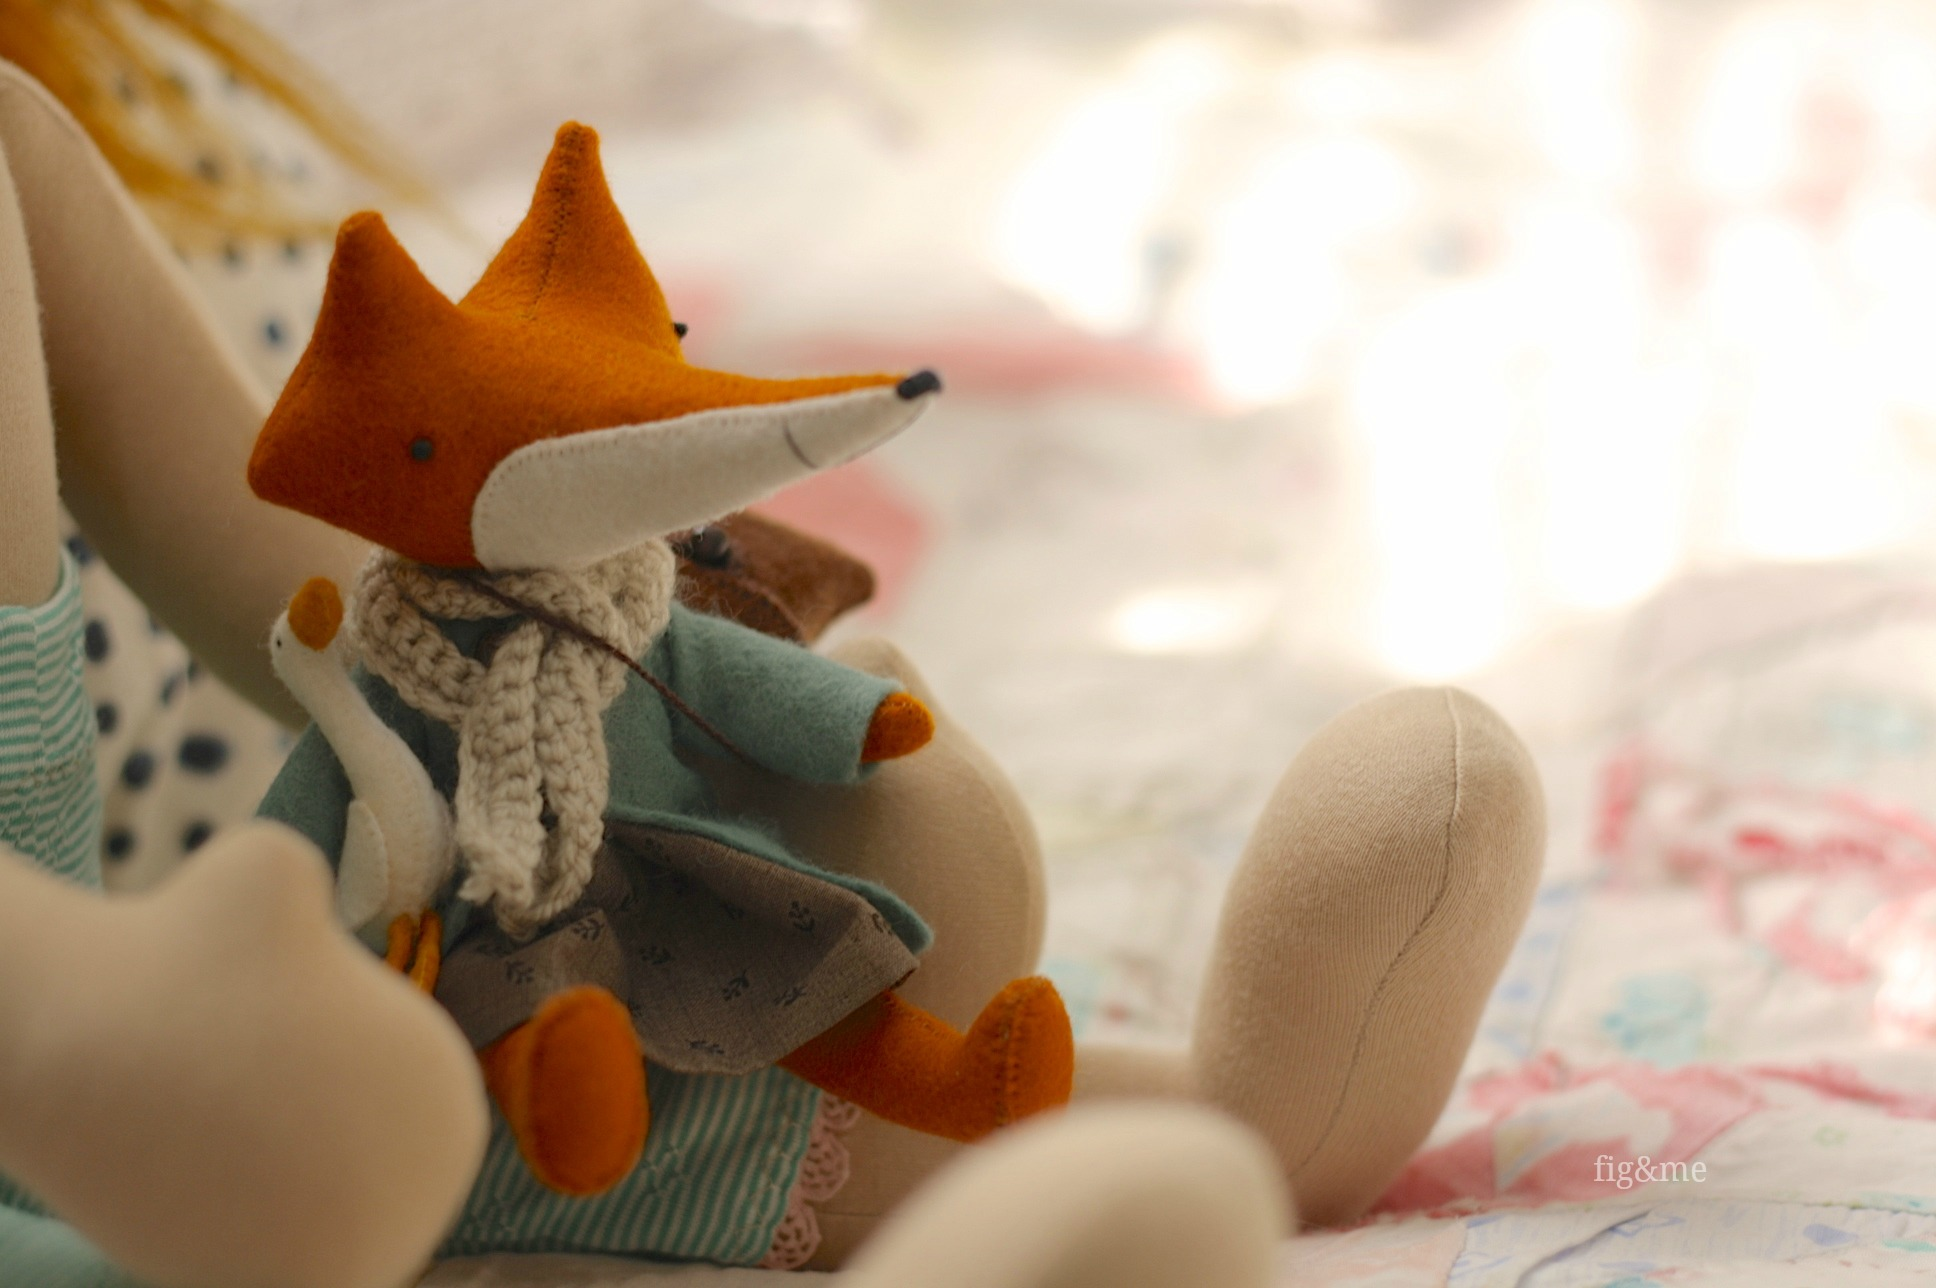 Miss Flora and Humphrey, toys made by Manomine (via Fig&me)